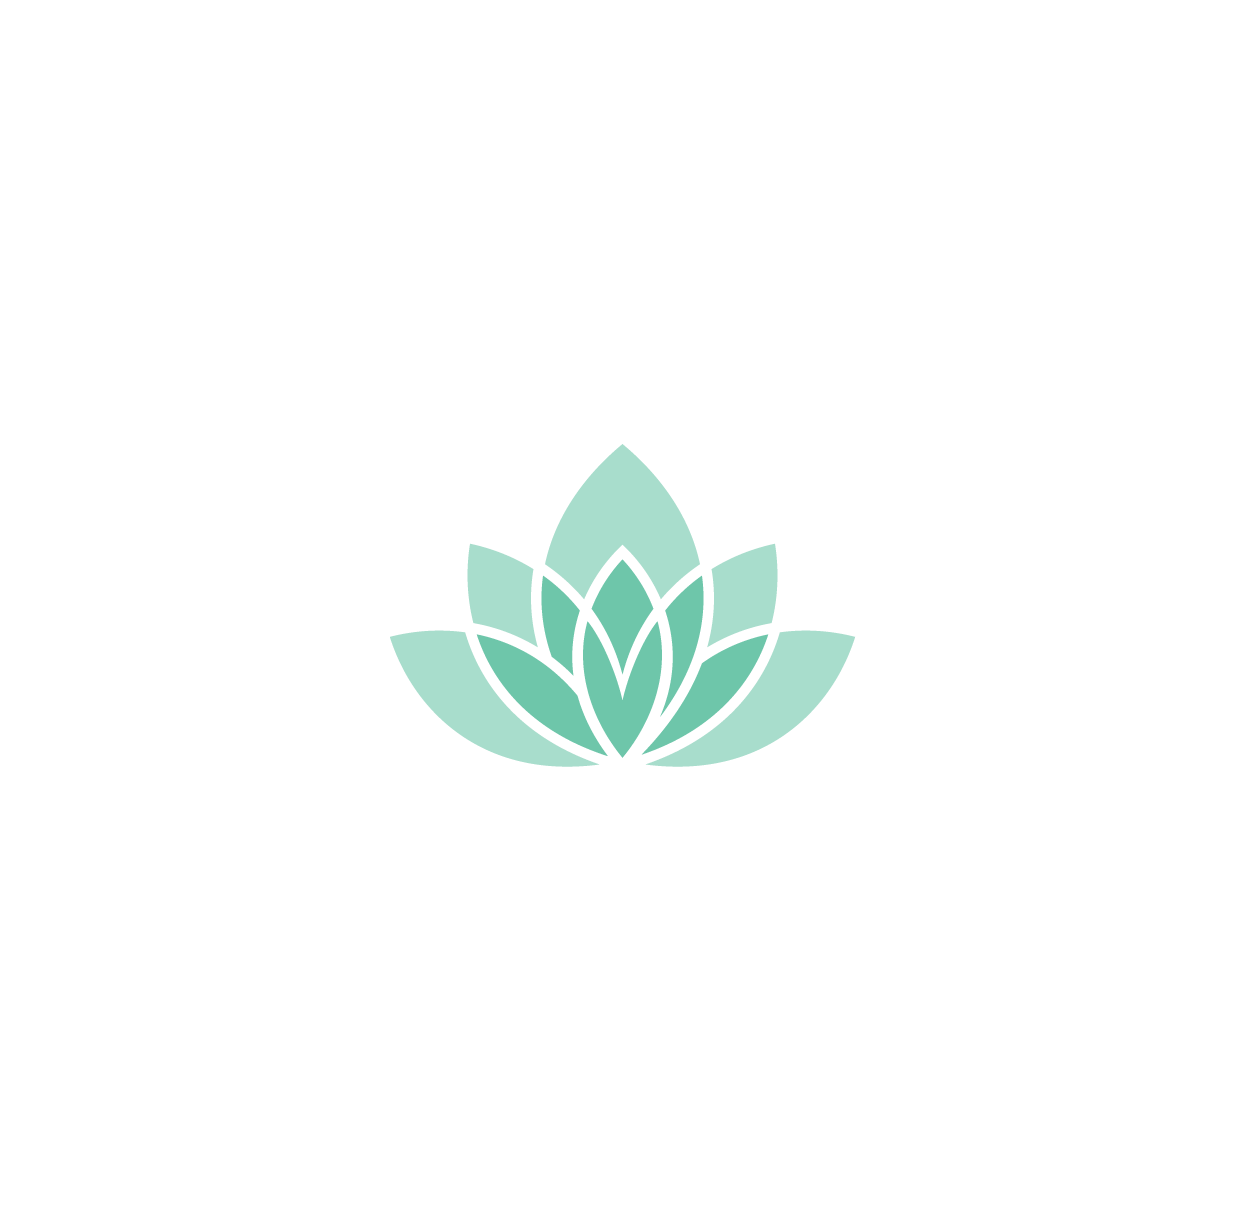 Lotus-flower-icon.png